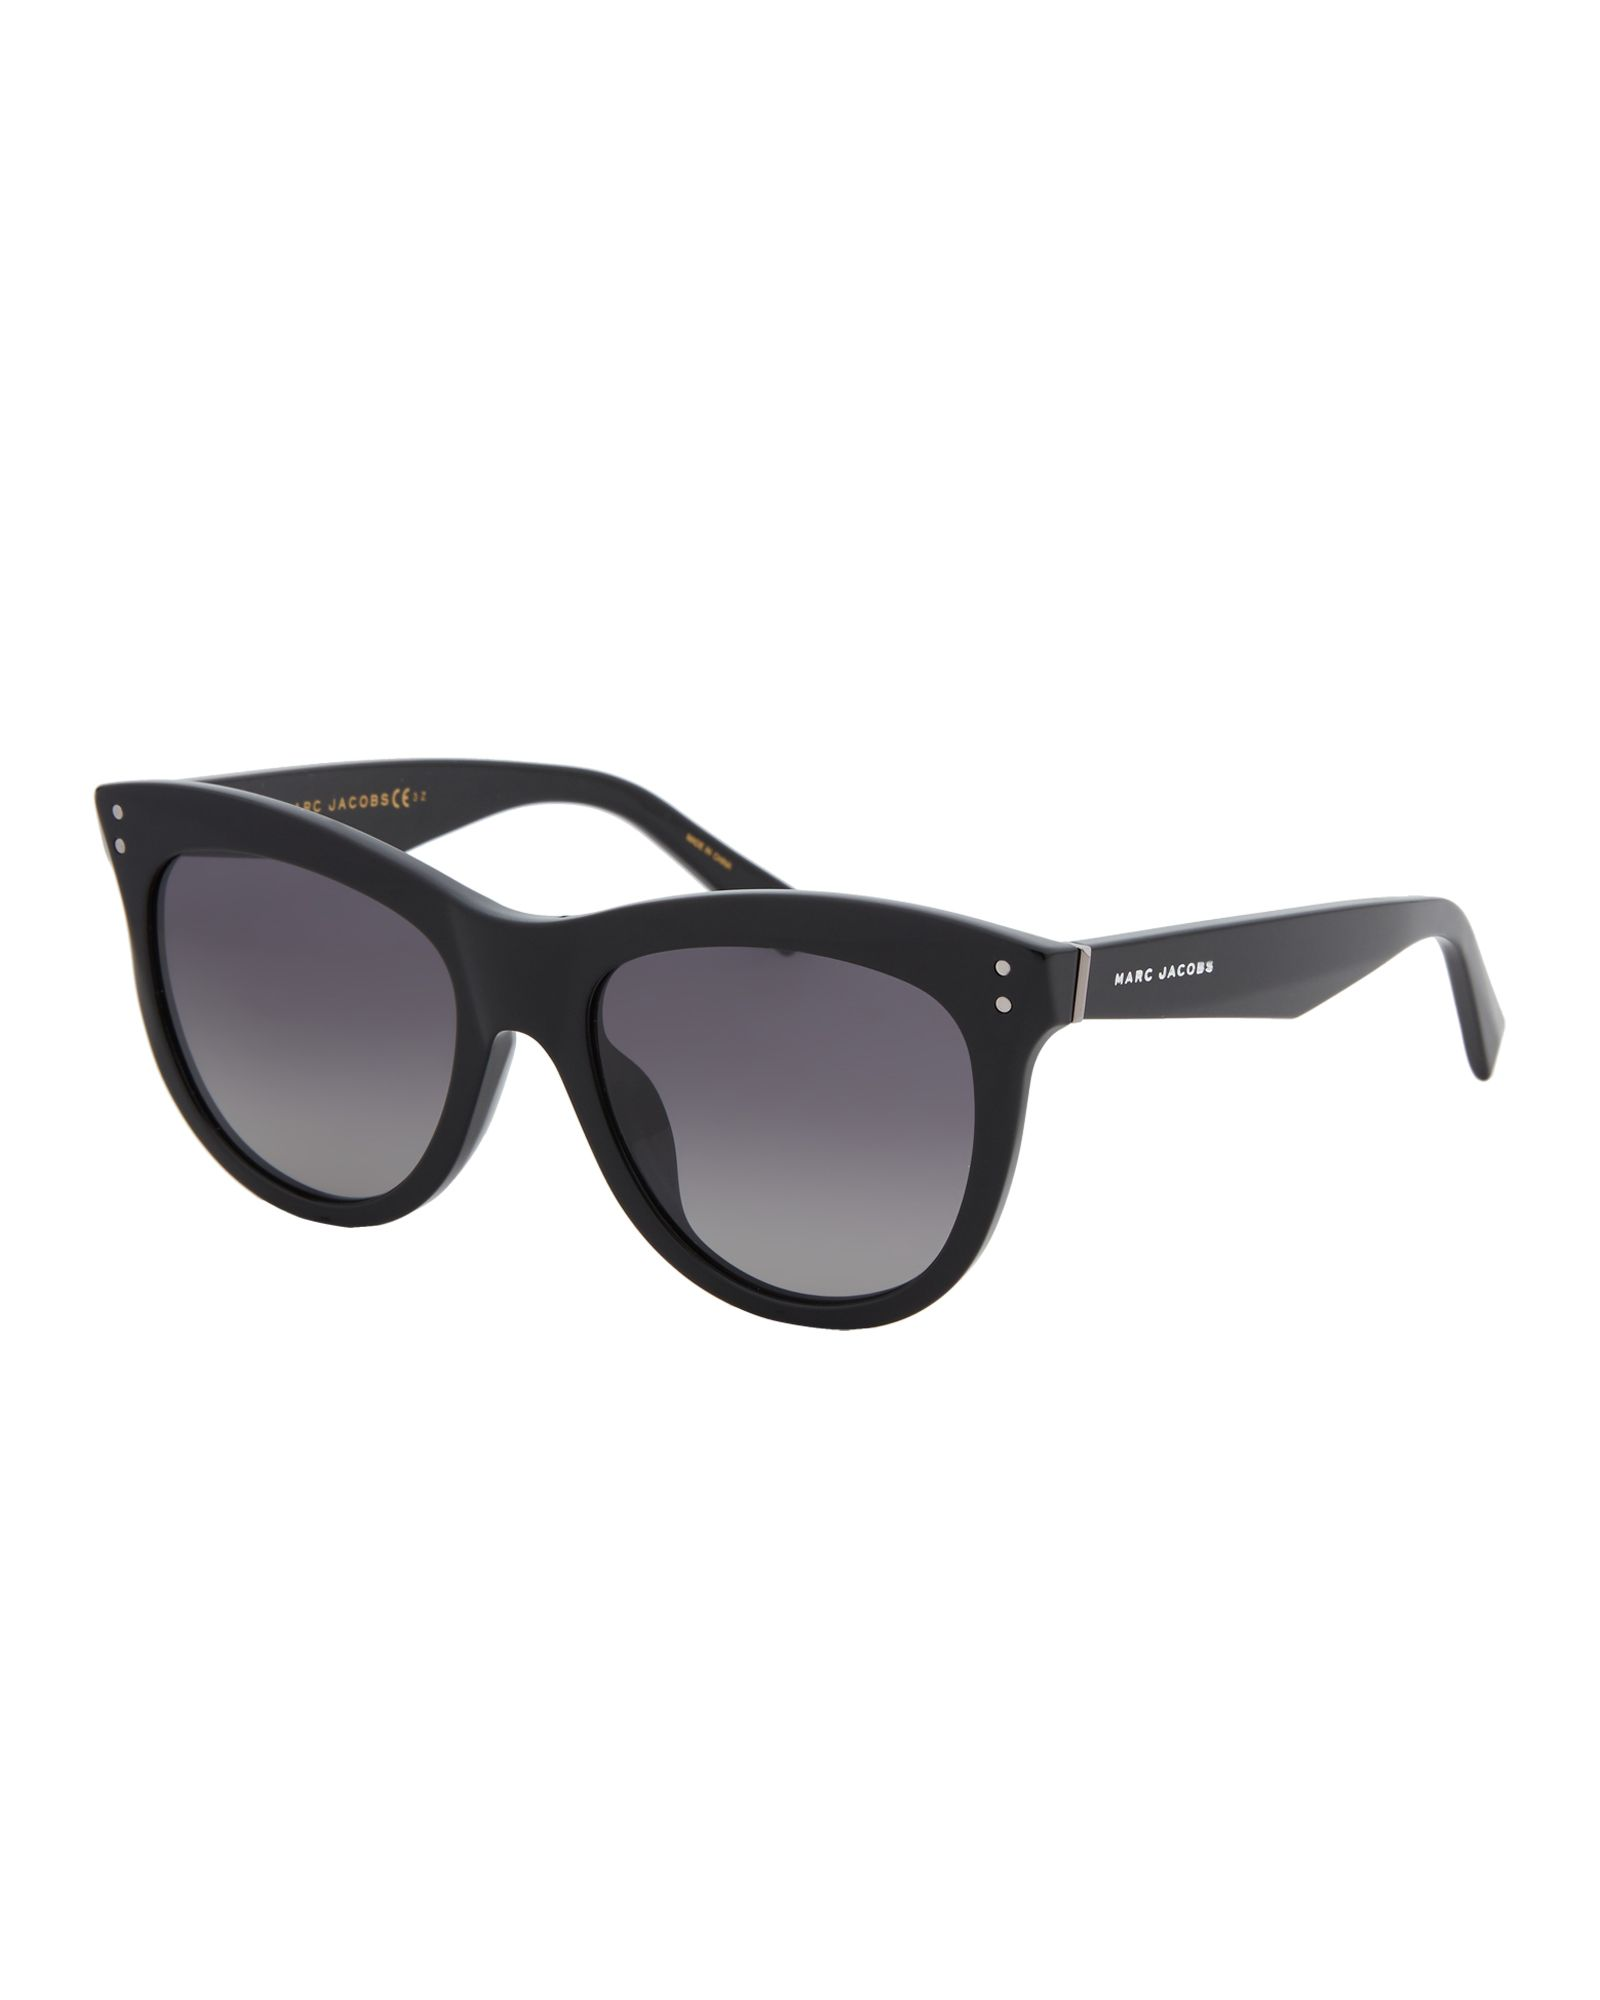 6cc13d025355 Marc Jacobs MARC 118/S Black Polarized Round Wayfarer Sunglasses ...